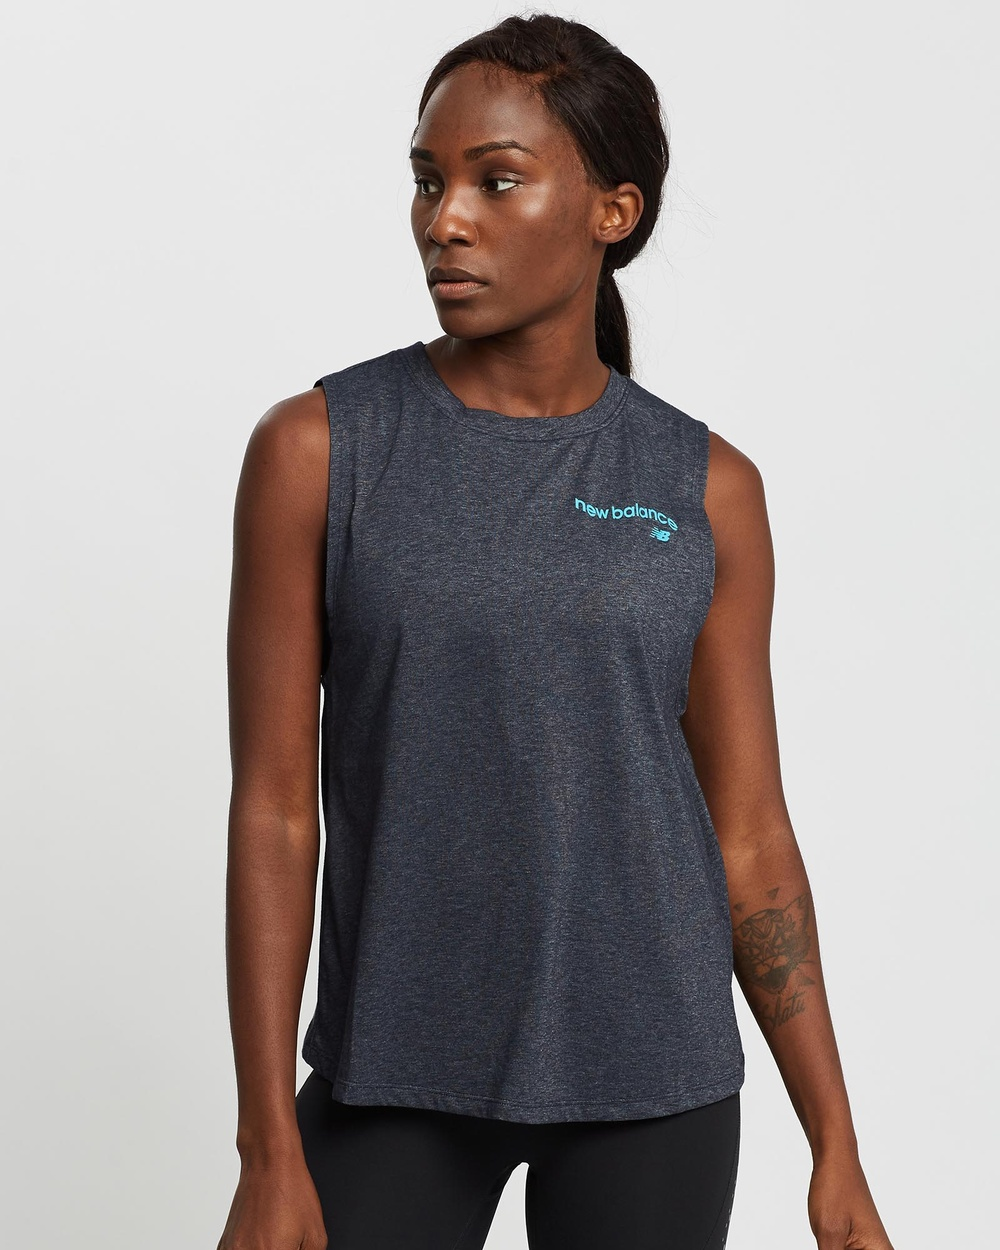 New Balance Relentless Cinched Back Graphic Tank Muscle Tops Eclipse Heather Australia